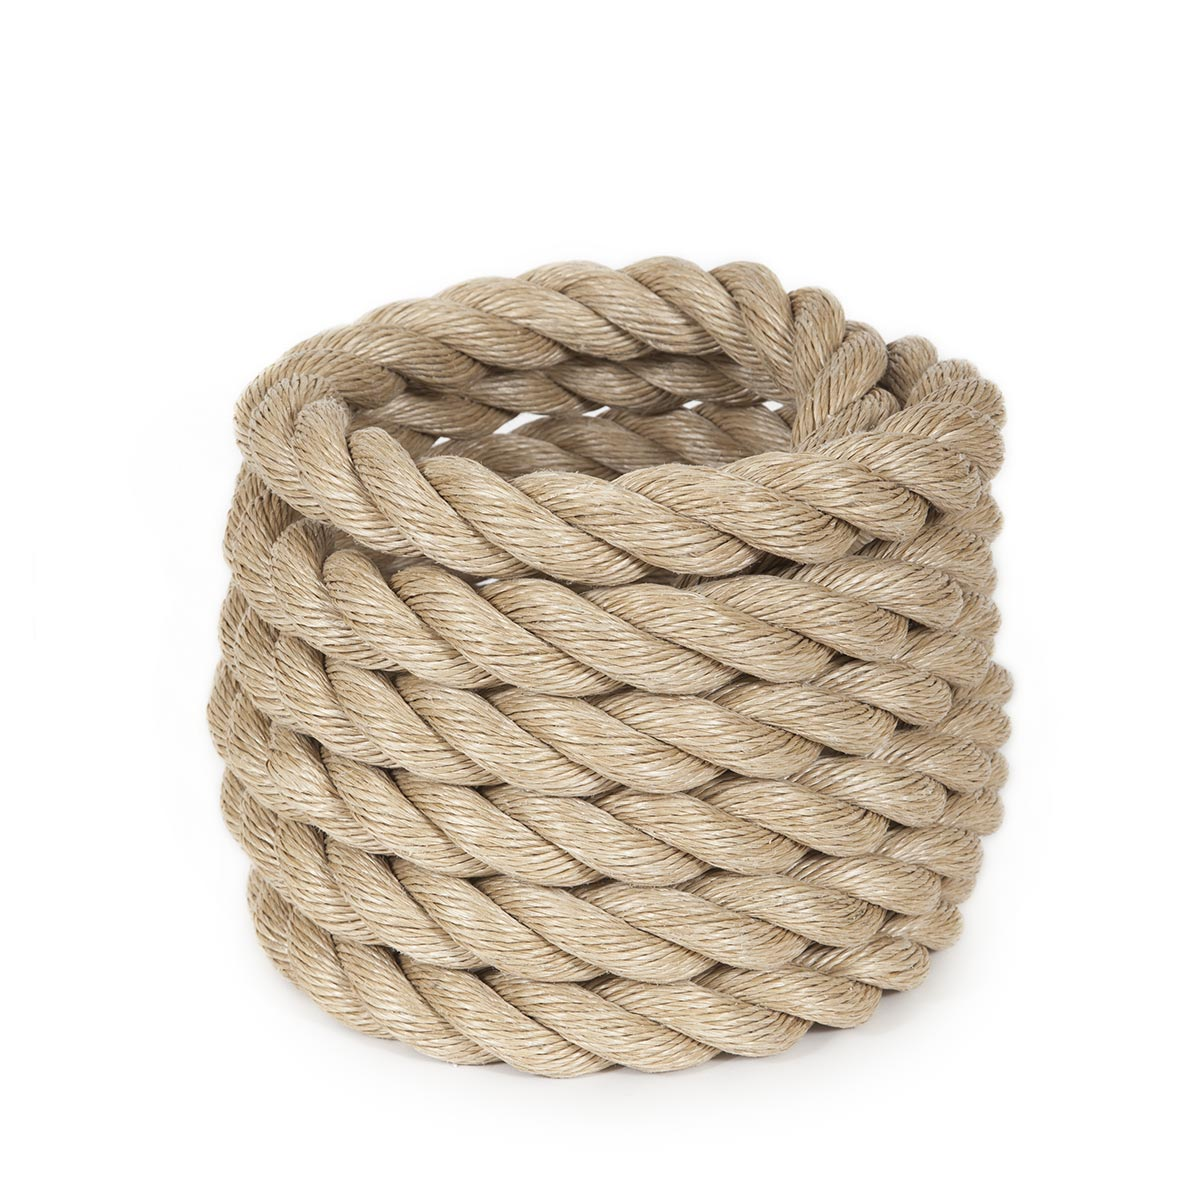 Sporting Wedding d/écor Hanging Flower Baskets Landscaping /& D/écor 100/% Natural Strong Jute Rope 49 Feet 1//2 inch Ply Hemp Rope All Purpose Cord for Crafts Ideal for Nautical Knots Gardening an /…